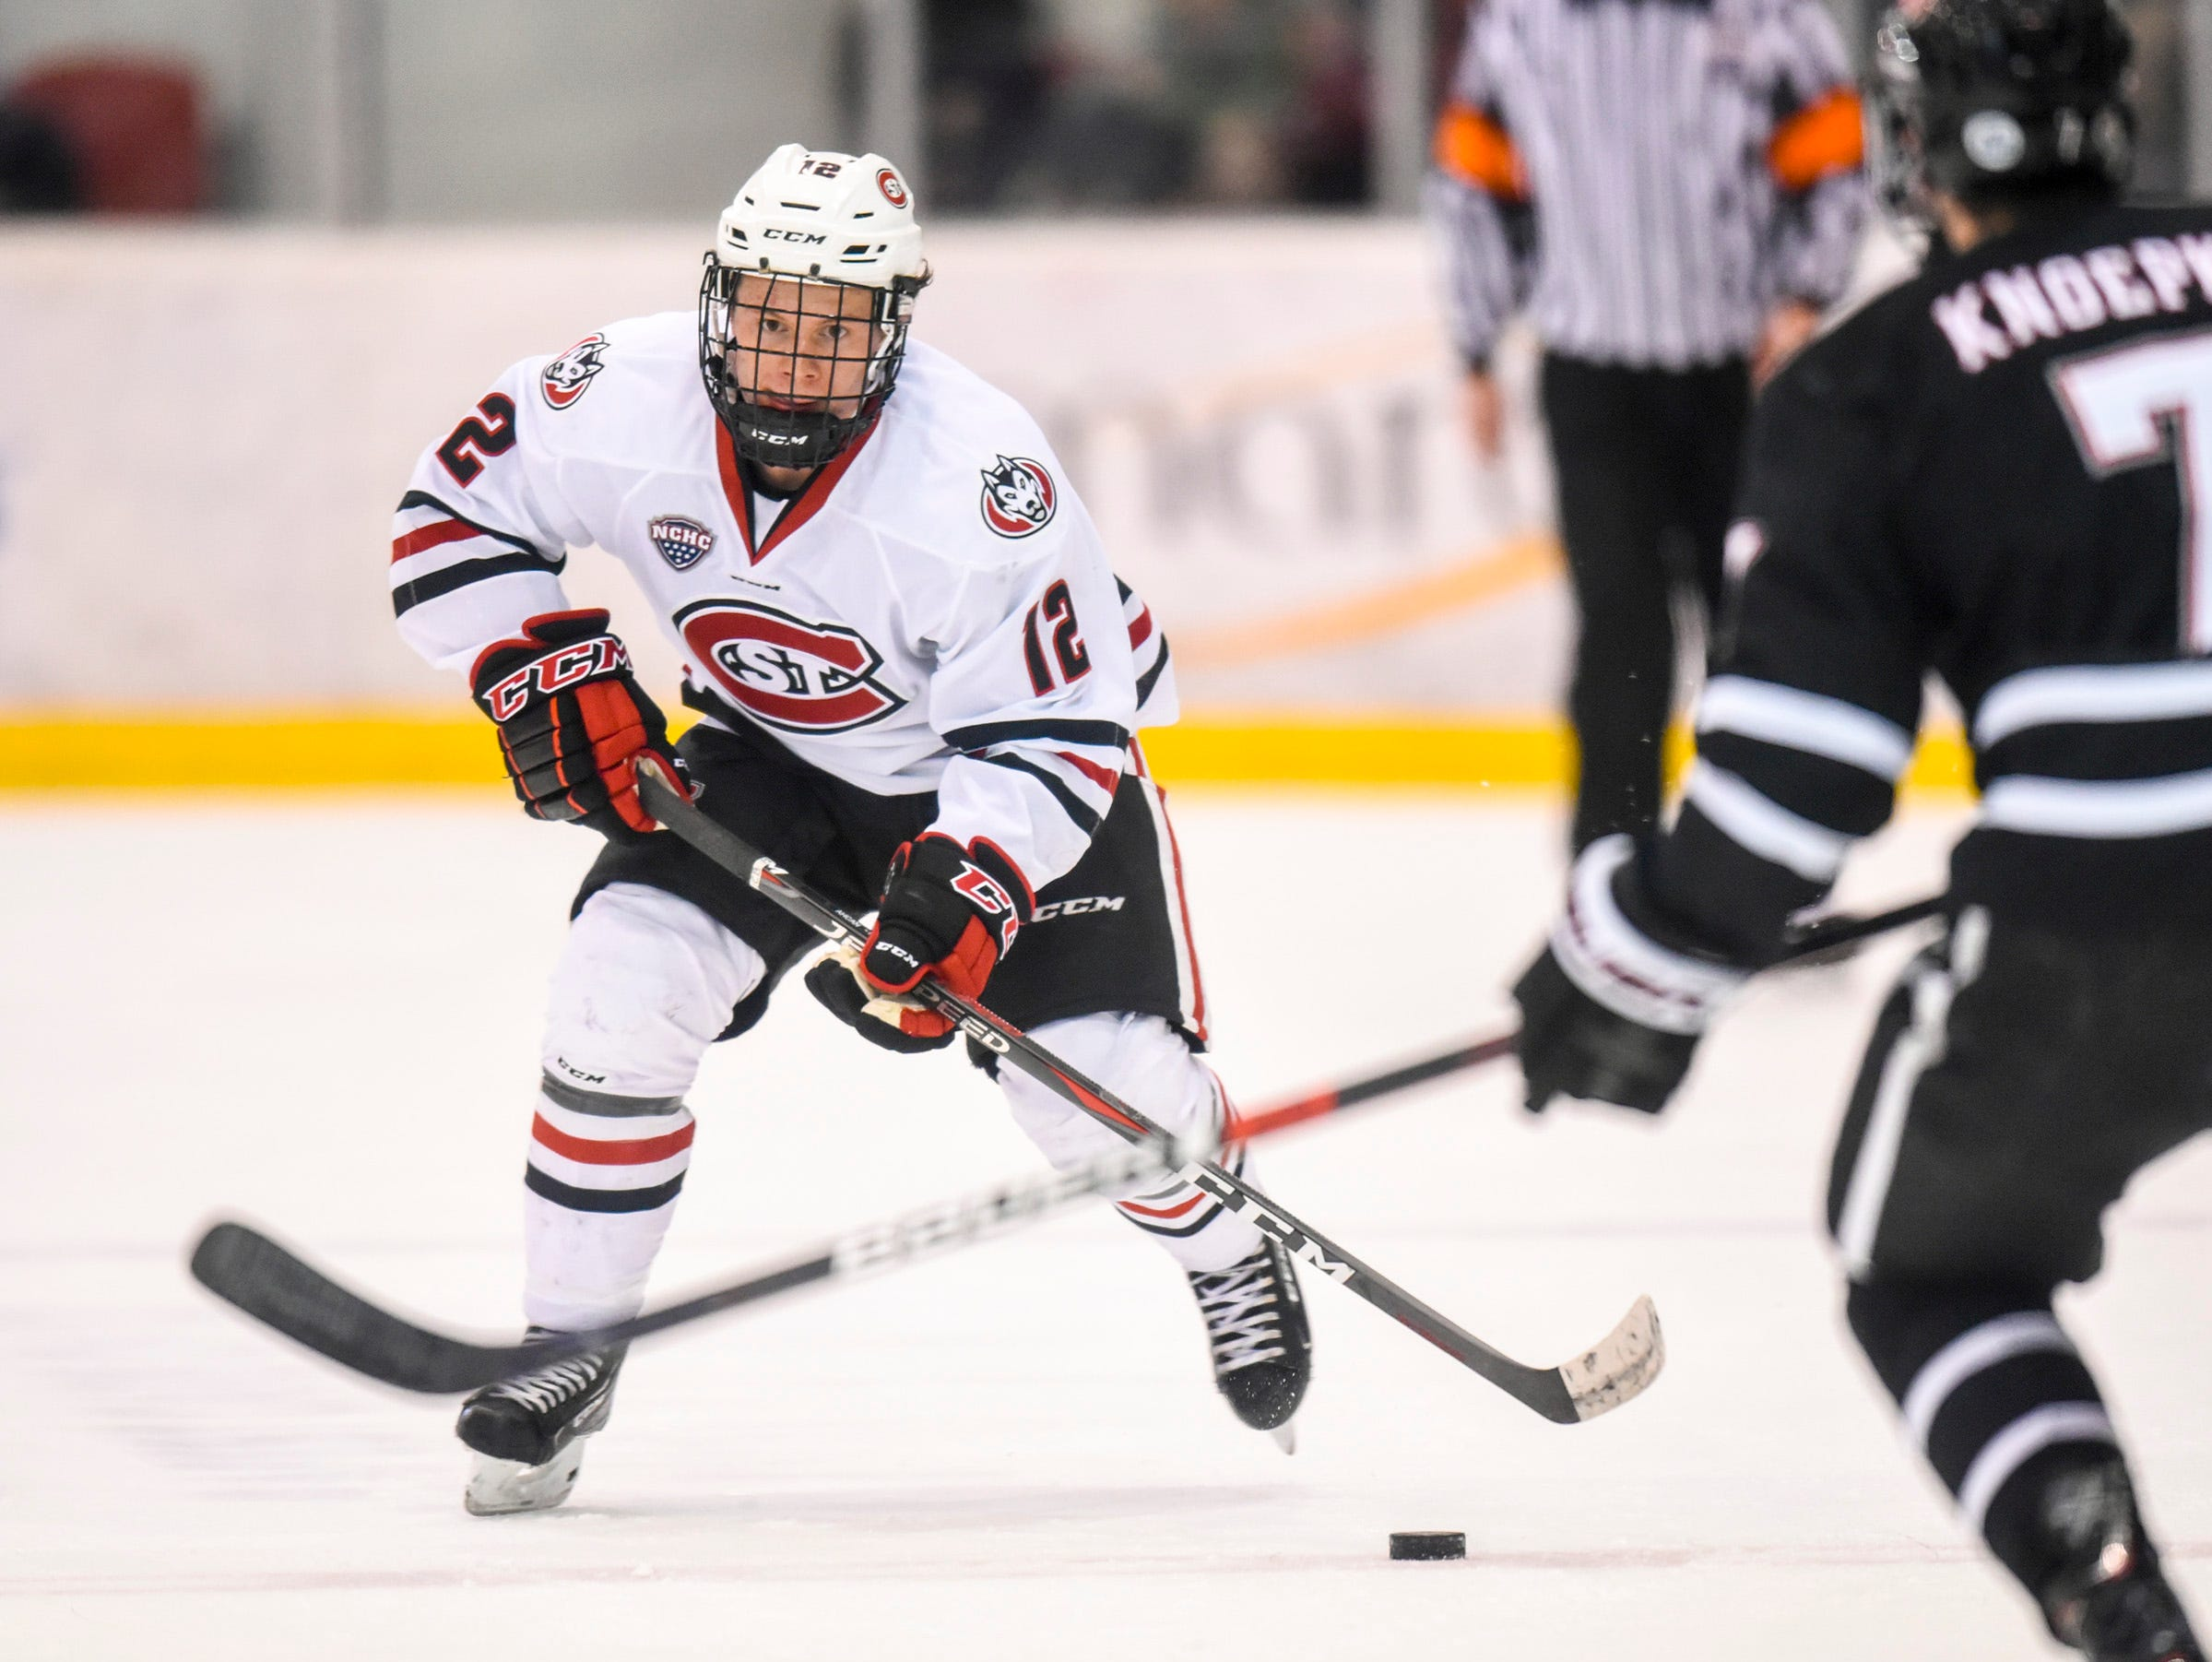 St. Cloud State's Jack Ahcan skates with the puck during the first period Saturday, Dec. 8, at the Herb Brooks National Hockey Center.